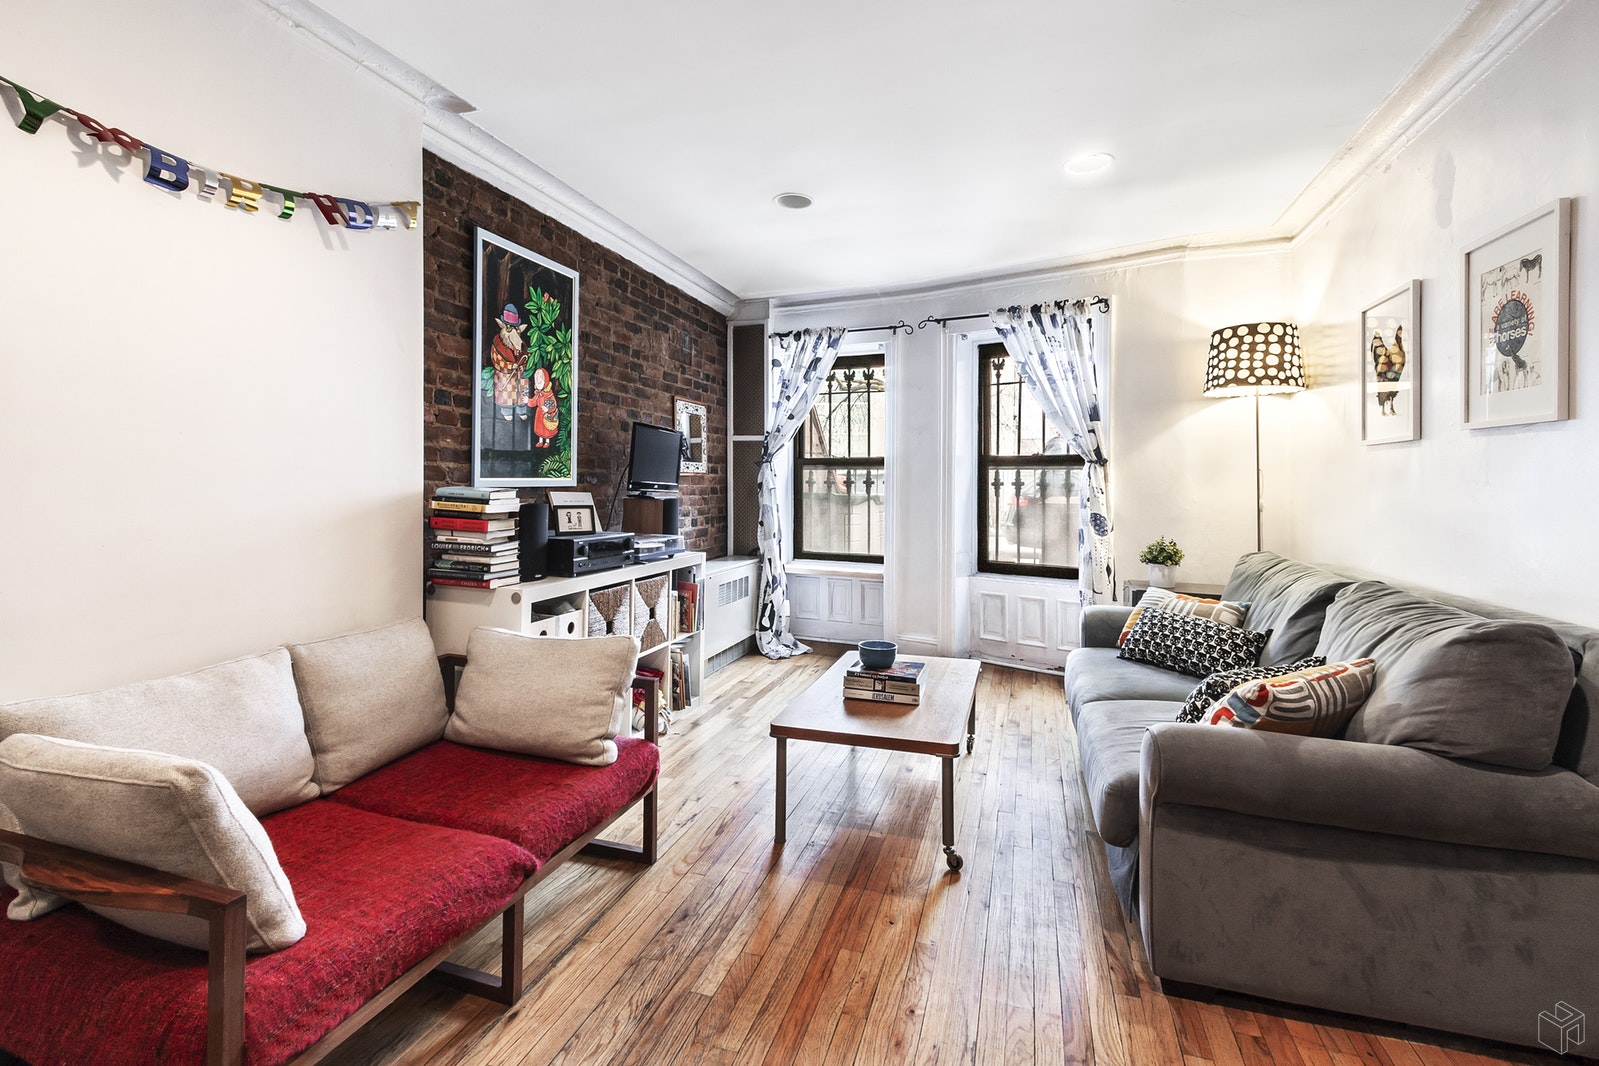 366 Park Place, Prospect Heights, Brooklyn, NY, 11238, $3,299,000, Property For Sale, ID# 18353944, Halstead